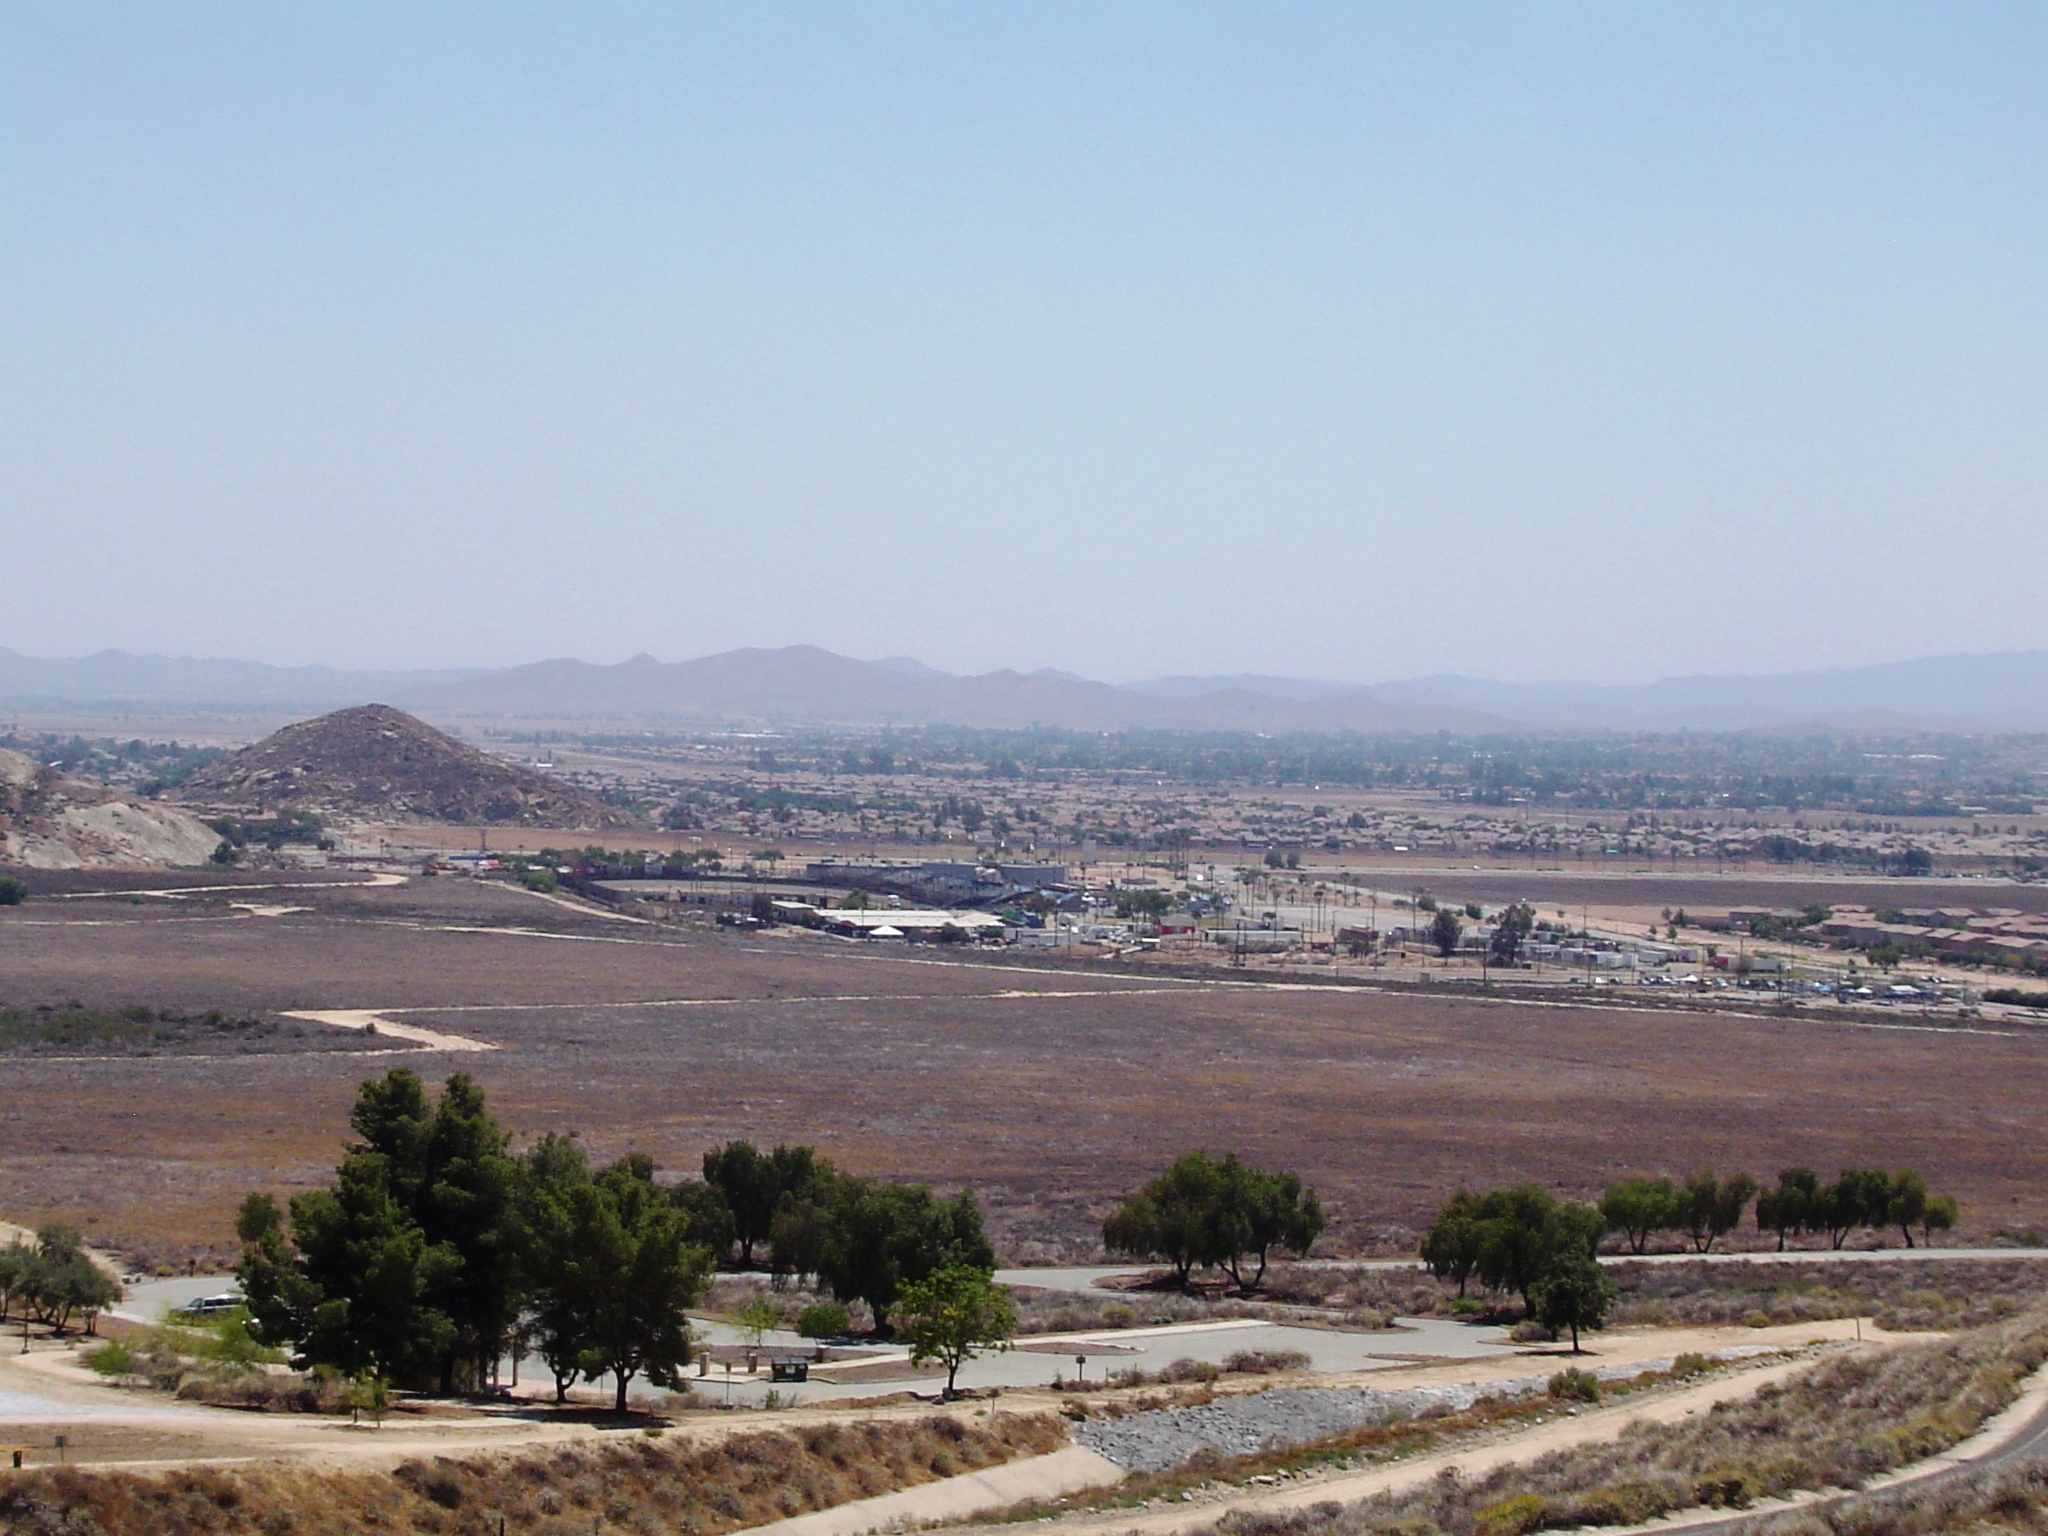 For A Beach Weekend Many Inland Southern Californians Head To Lake Perris Exploresoutherncal